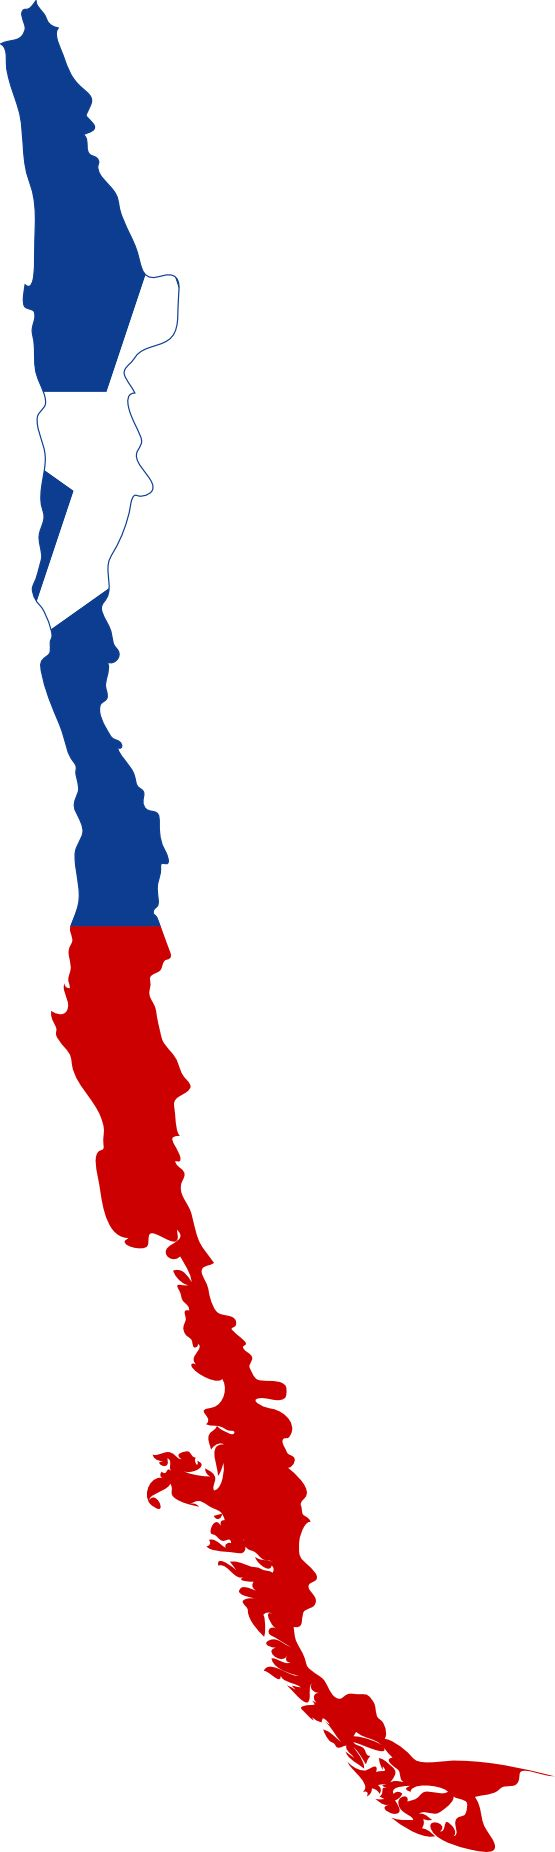 Chile flag bing images flags of the nations pinterest chile flag bing images flags of the nations pinterest chile flag biocorpaavc Images